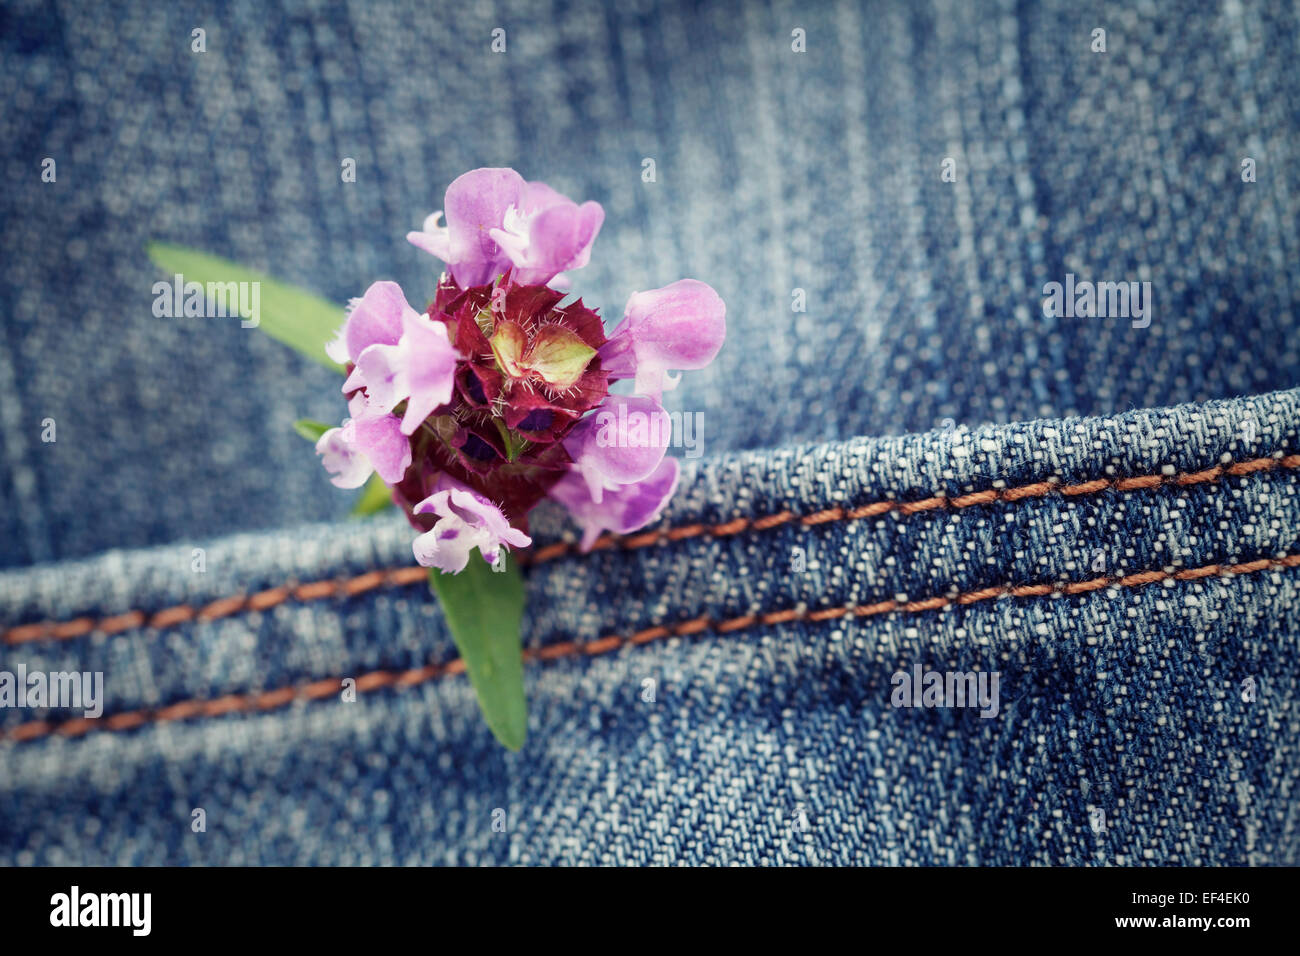 concept, flower in a pocket of jean trousers - Stock Image